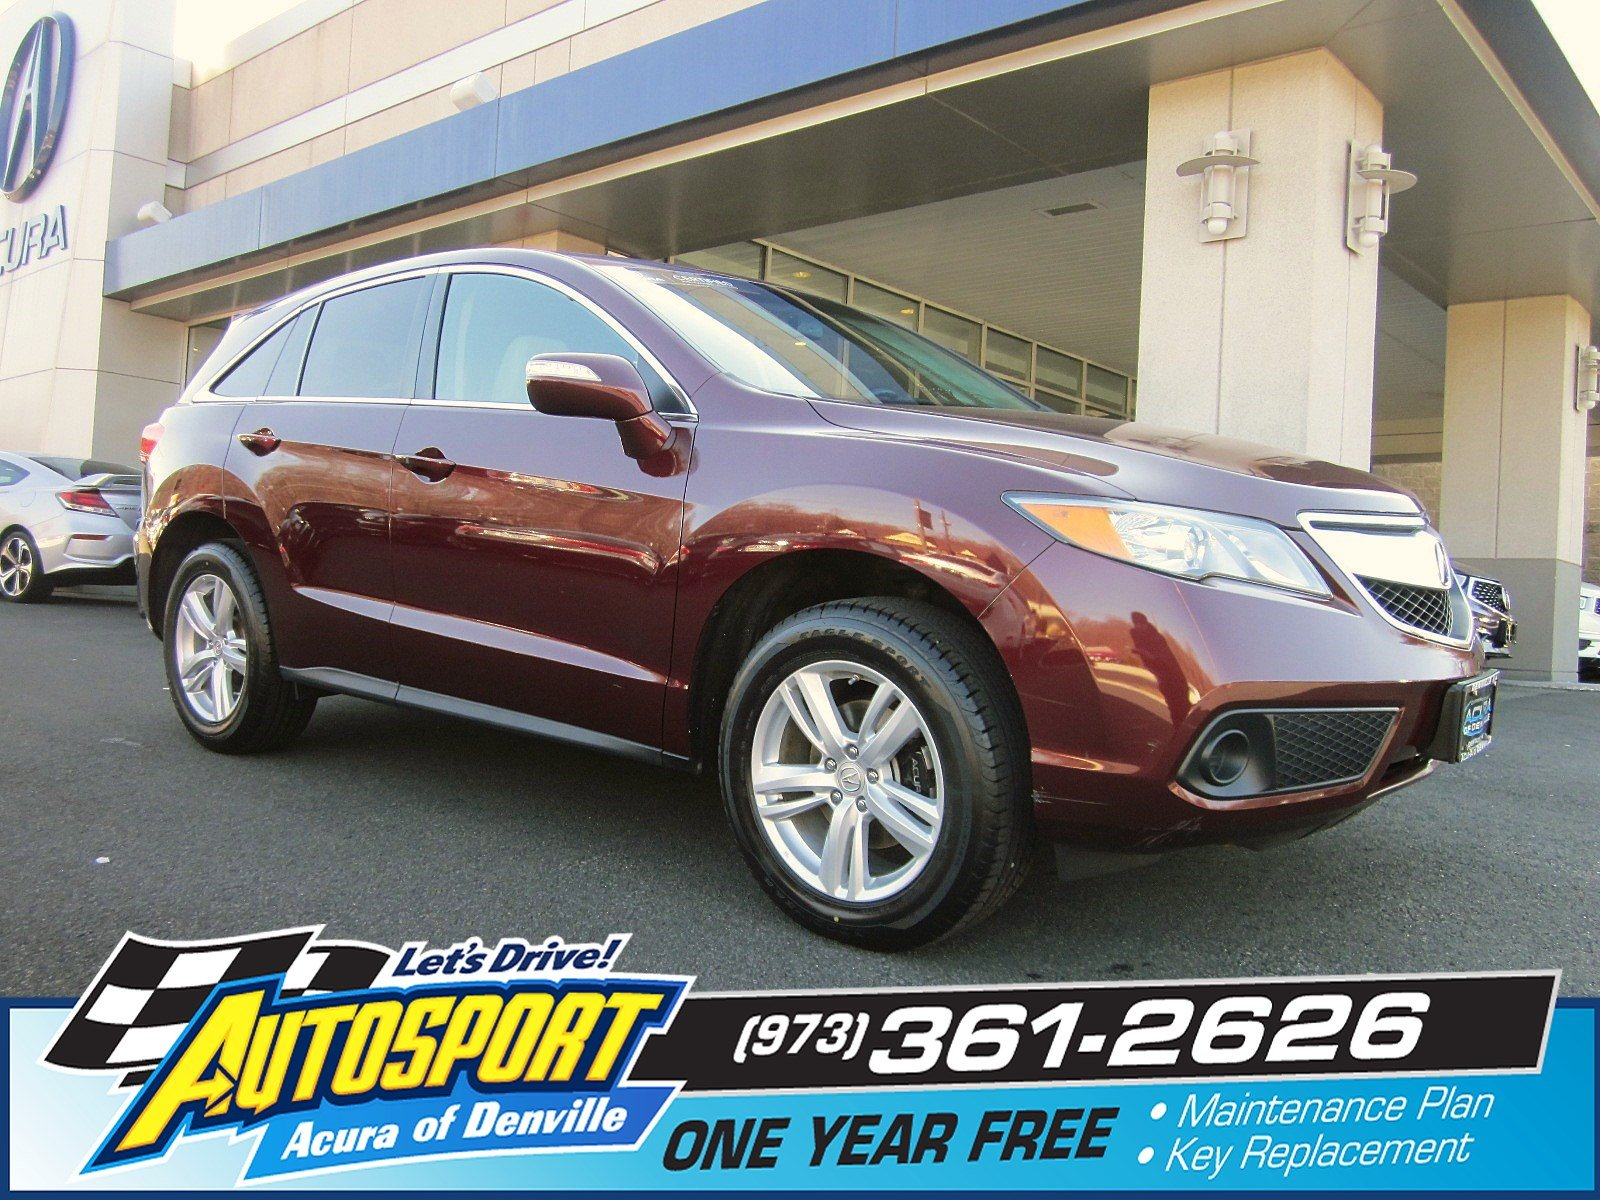 luxury package certified acura with owned cpo awd sh mdx warranty technology preowned pre best of